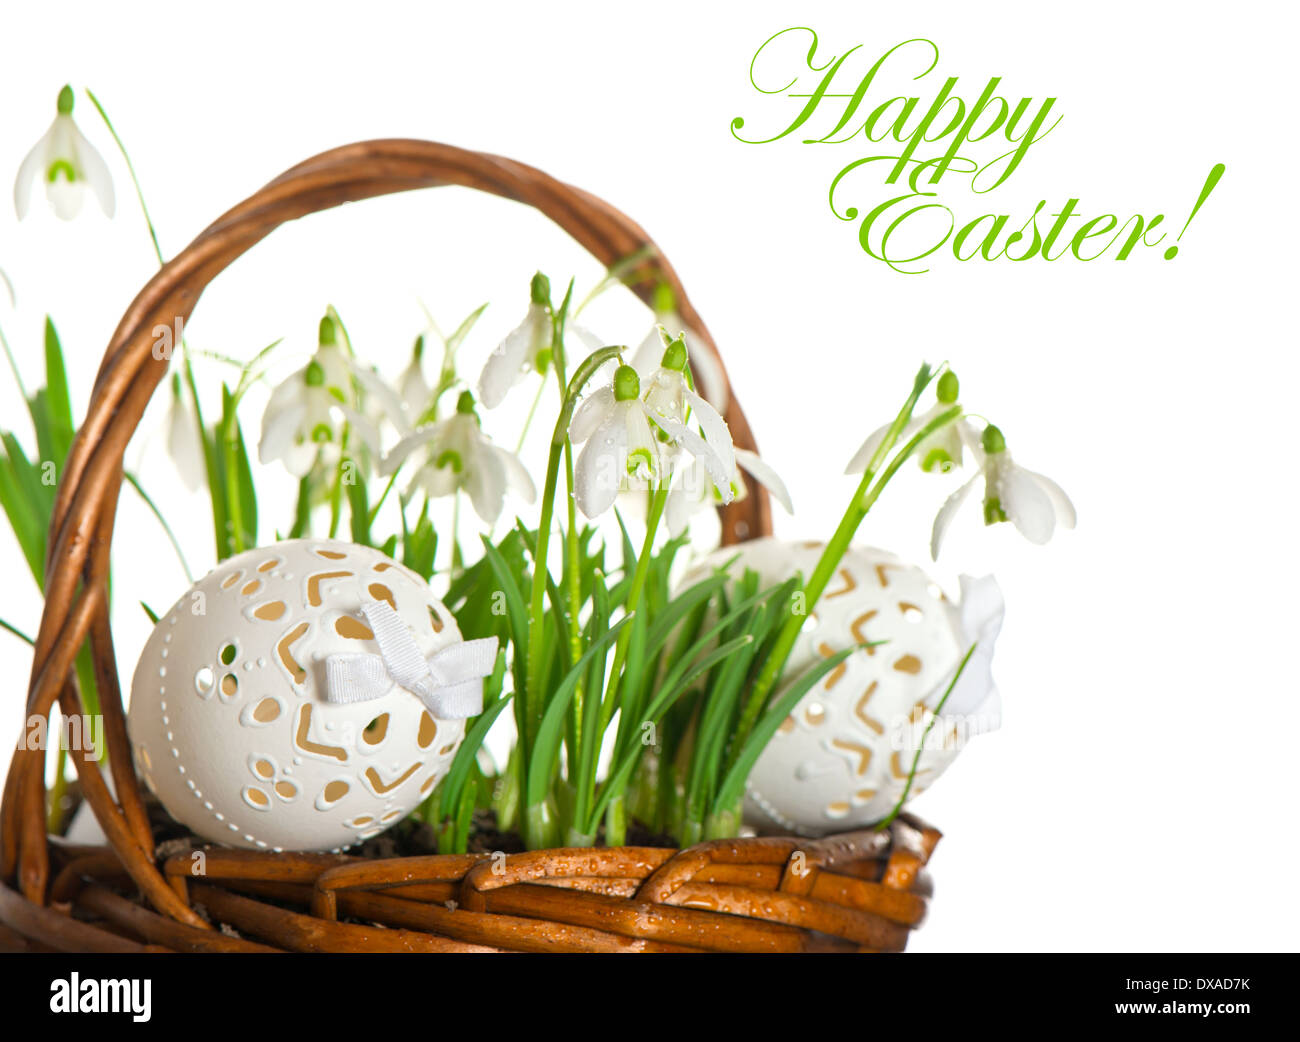 Happy Easter Card Concept Easter Eggs And Spring Flowers Snowdrops